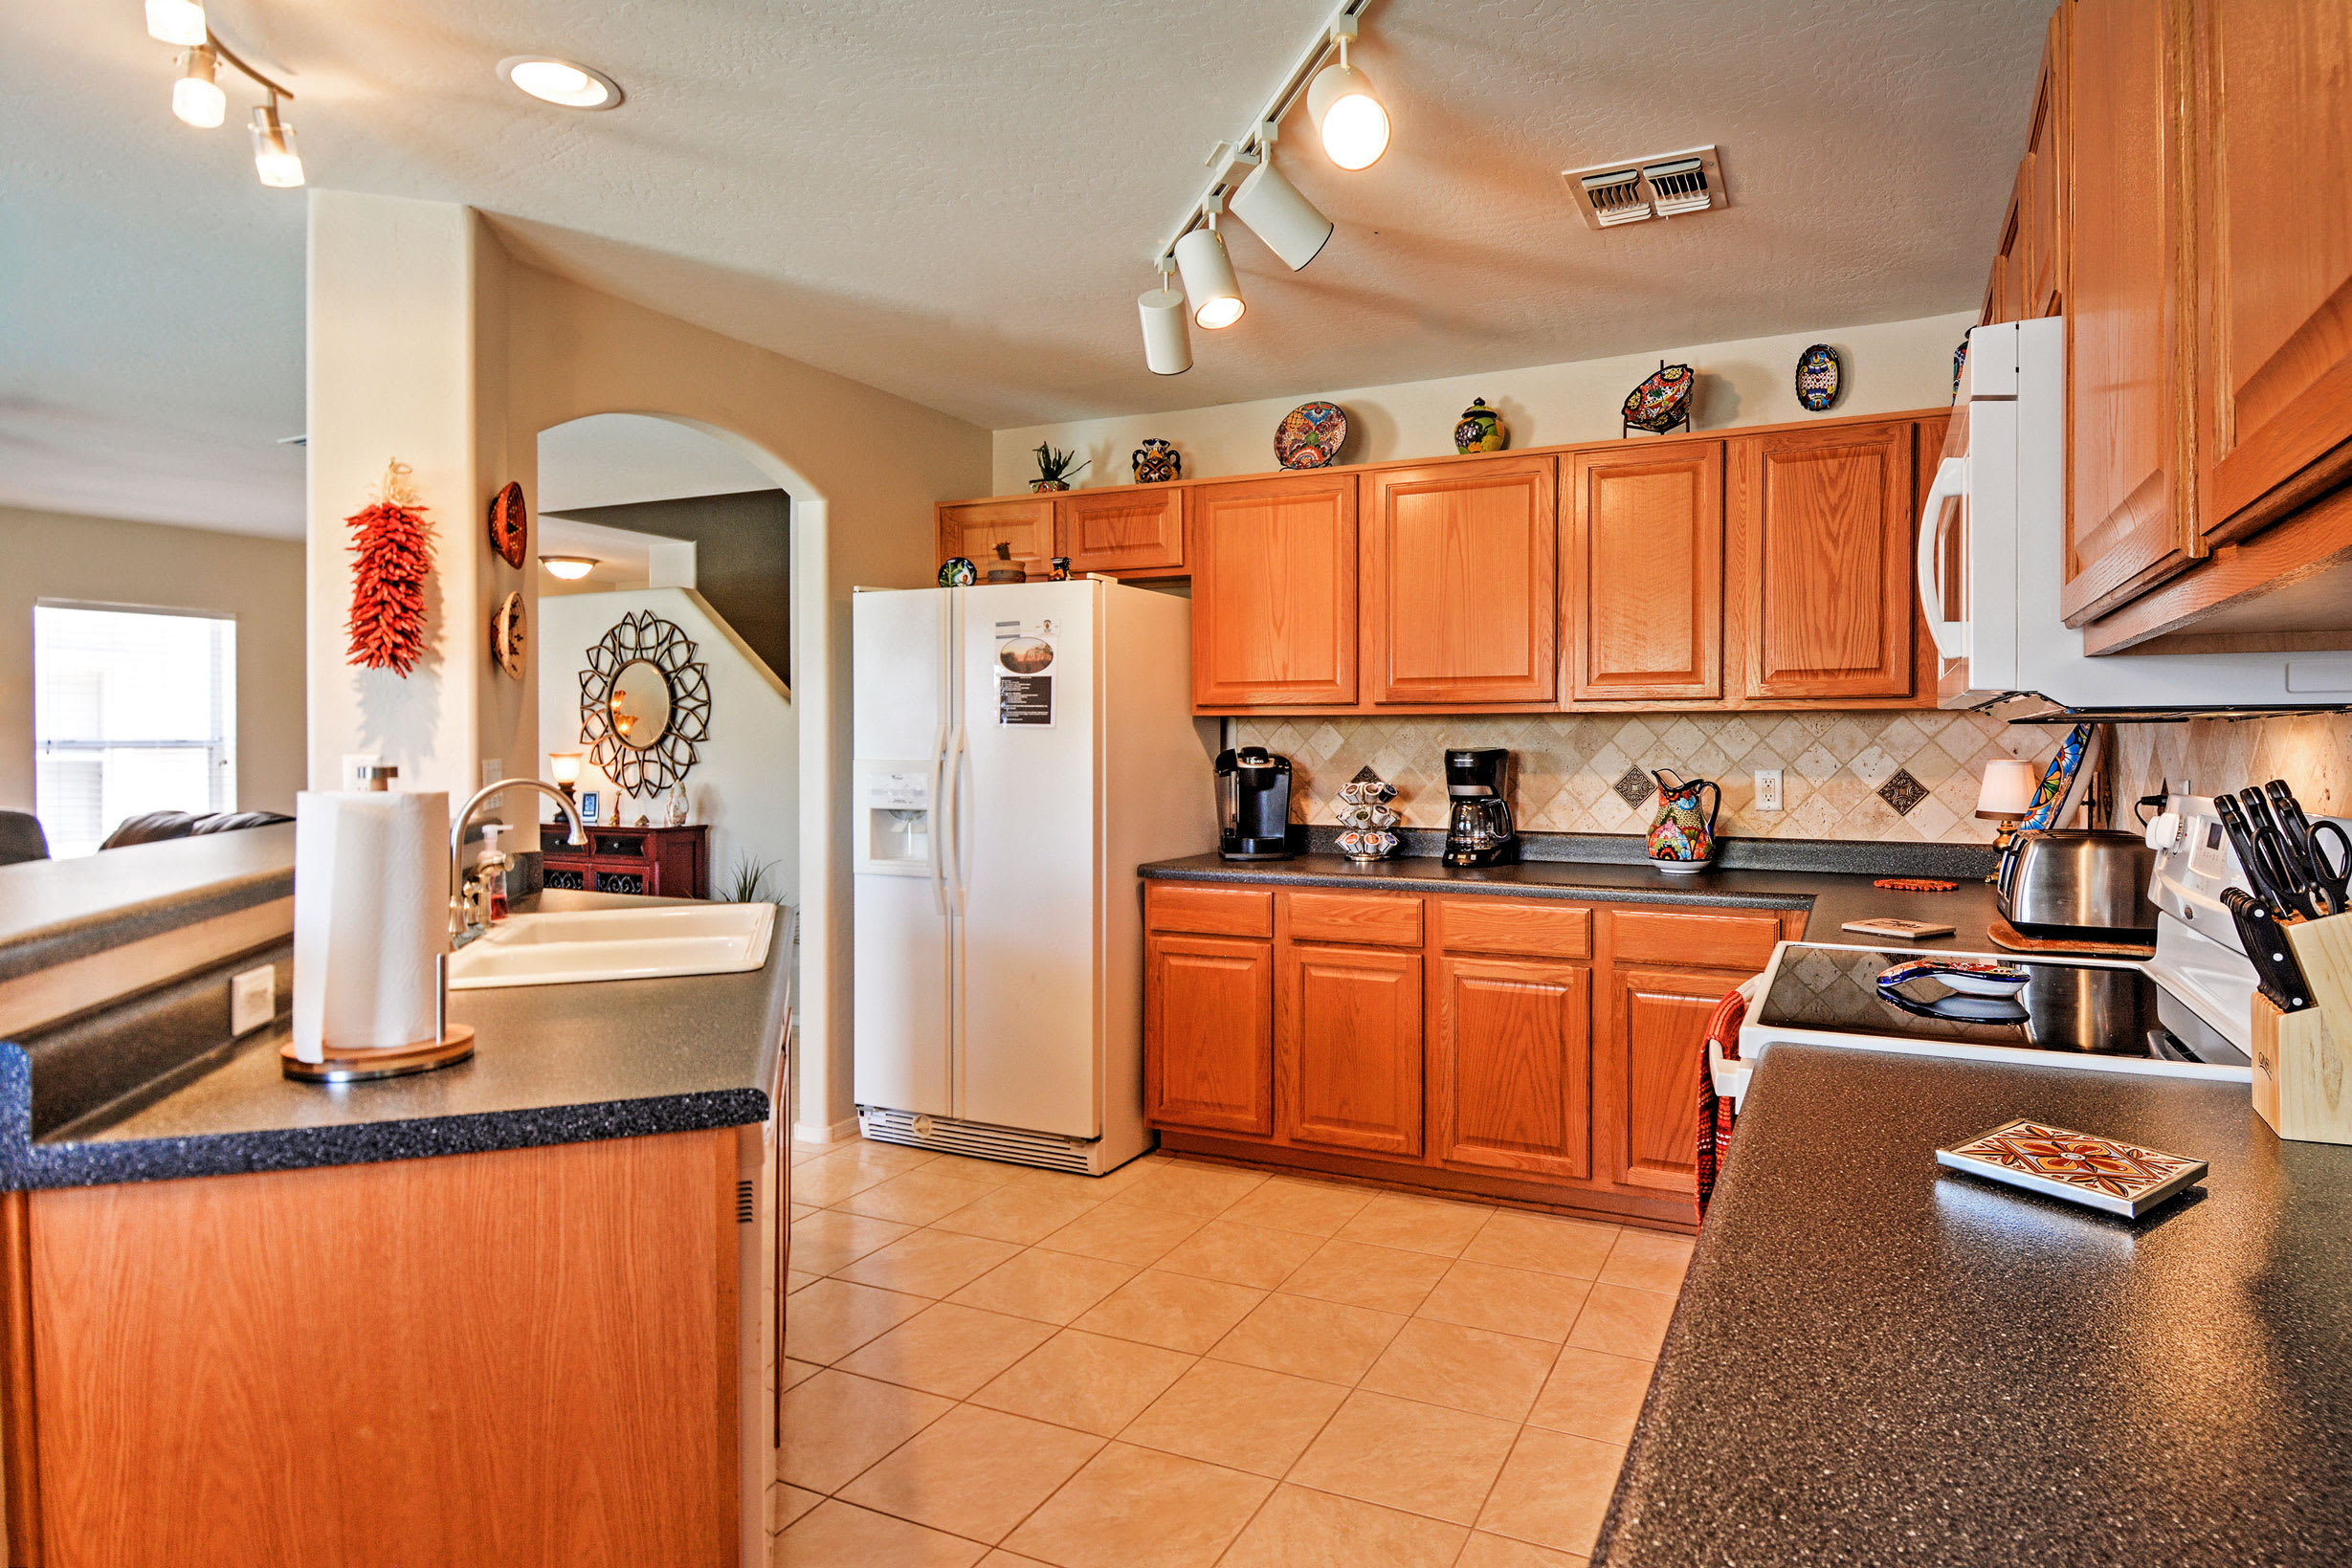 Bring your favorite recipes to life in the fully equipped kitchen!